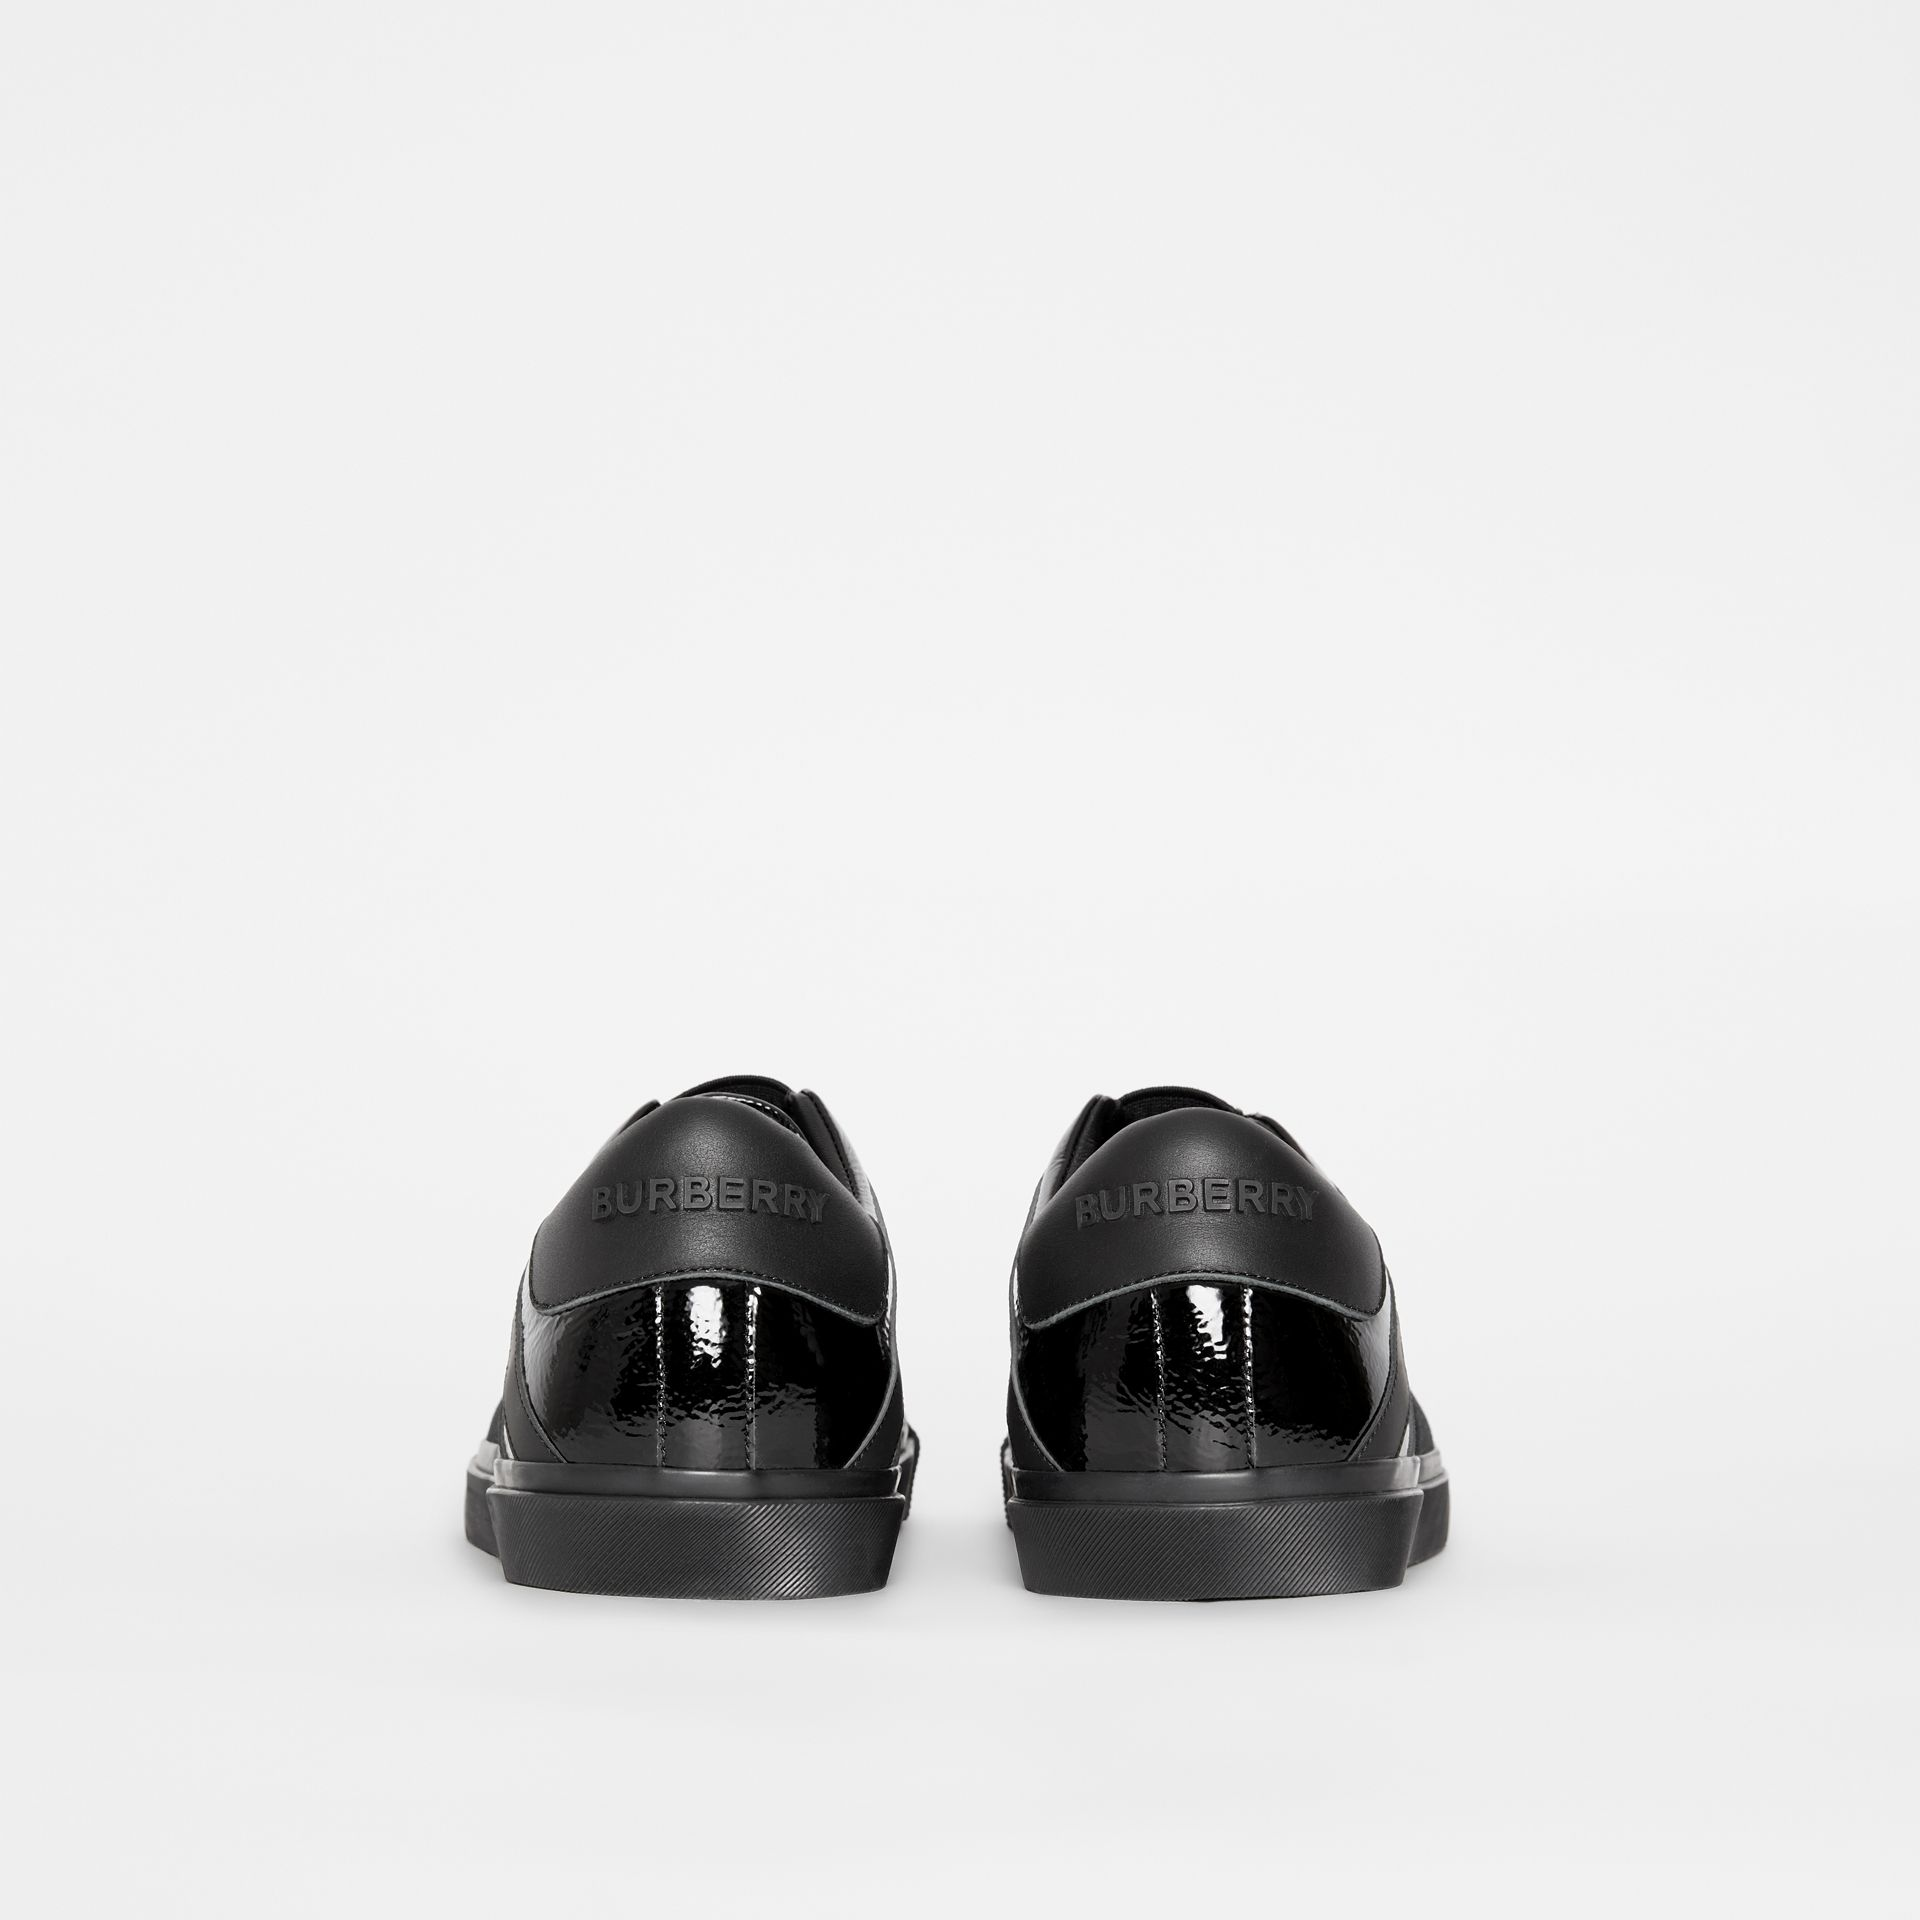 Union Jack Motif Slip-on Sneakers in Black - Men | Burberry United Kingdom - gallery image 3